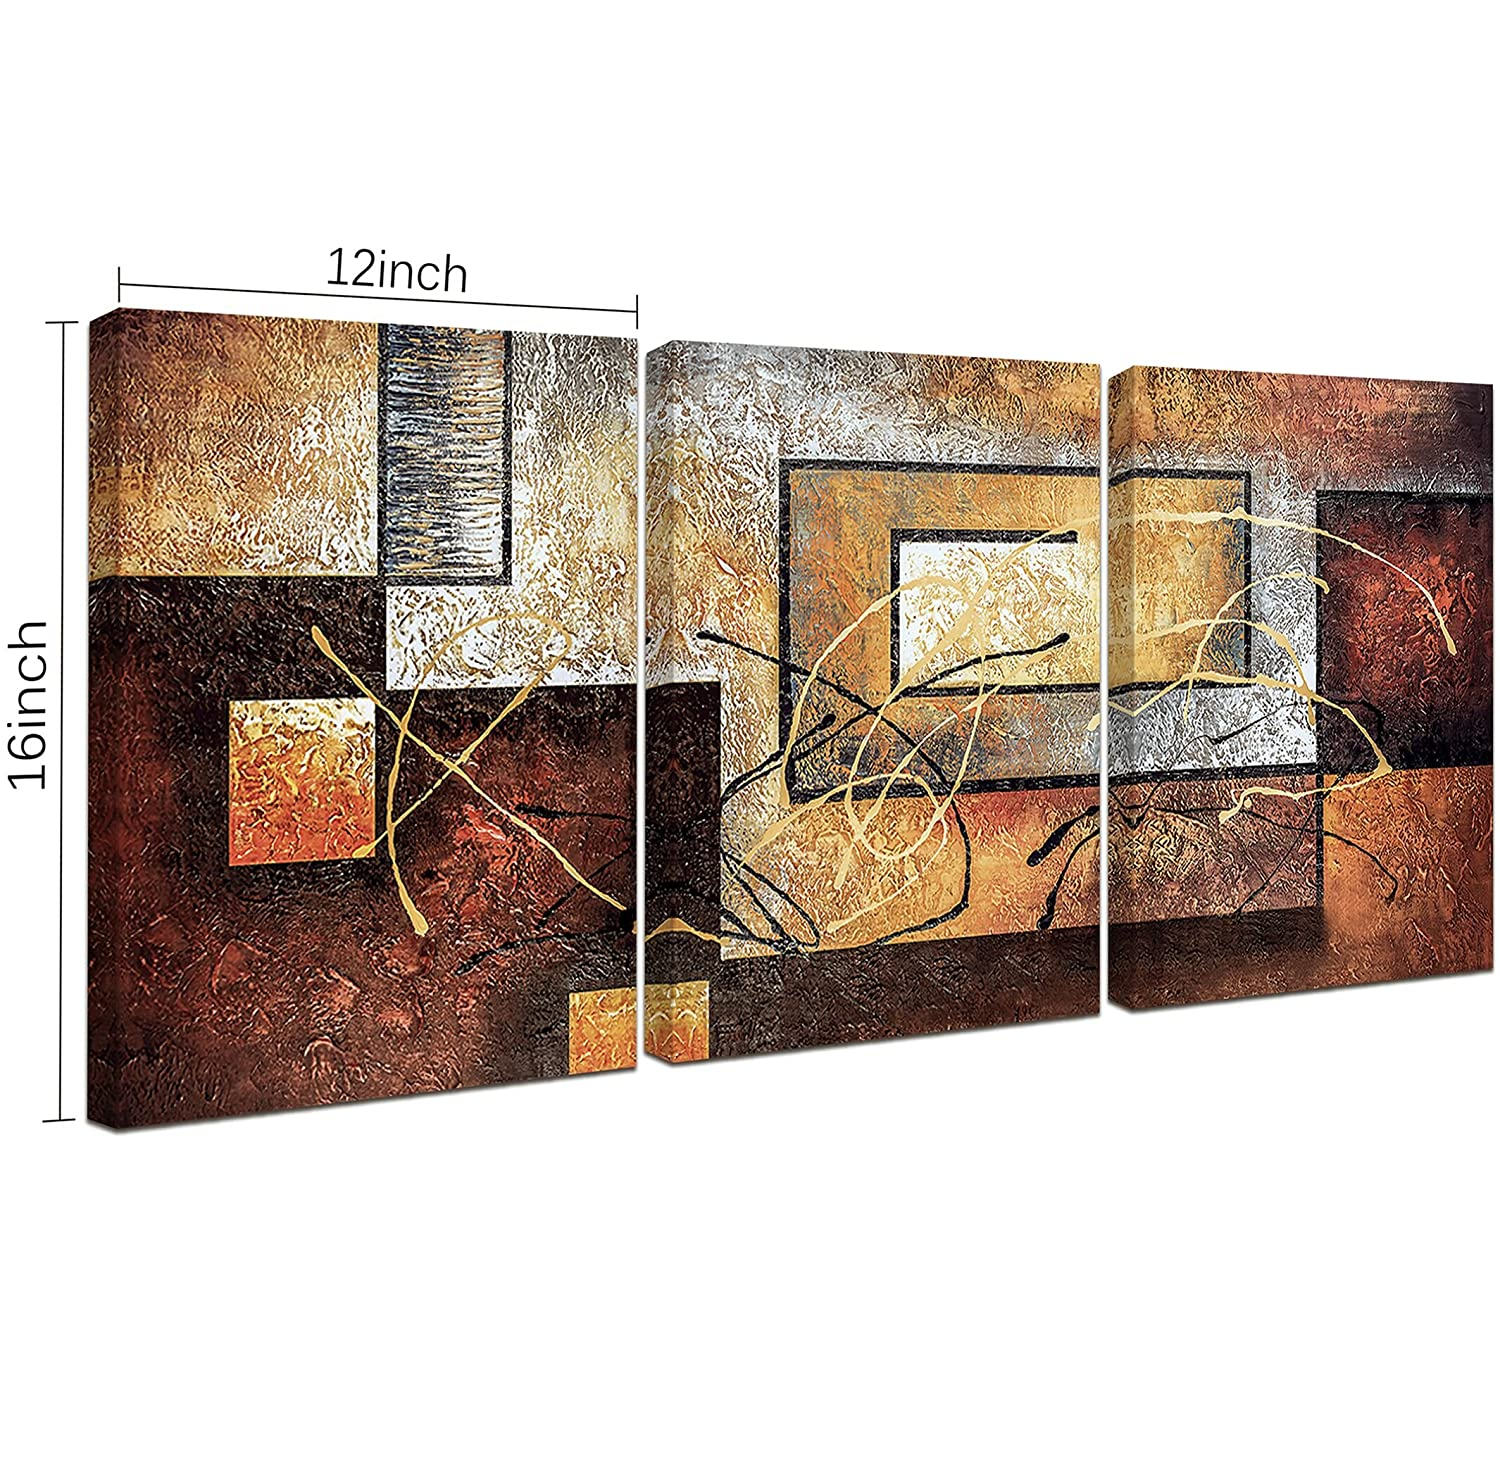 Wall Art Canvas Brown : Large modern contemporary piece oil on canvas painting